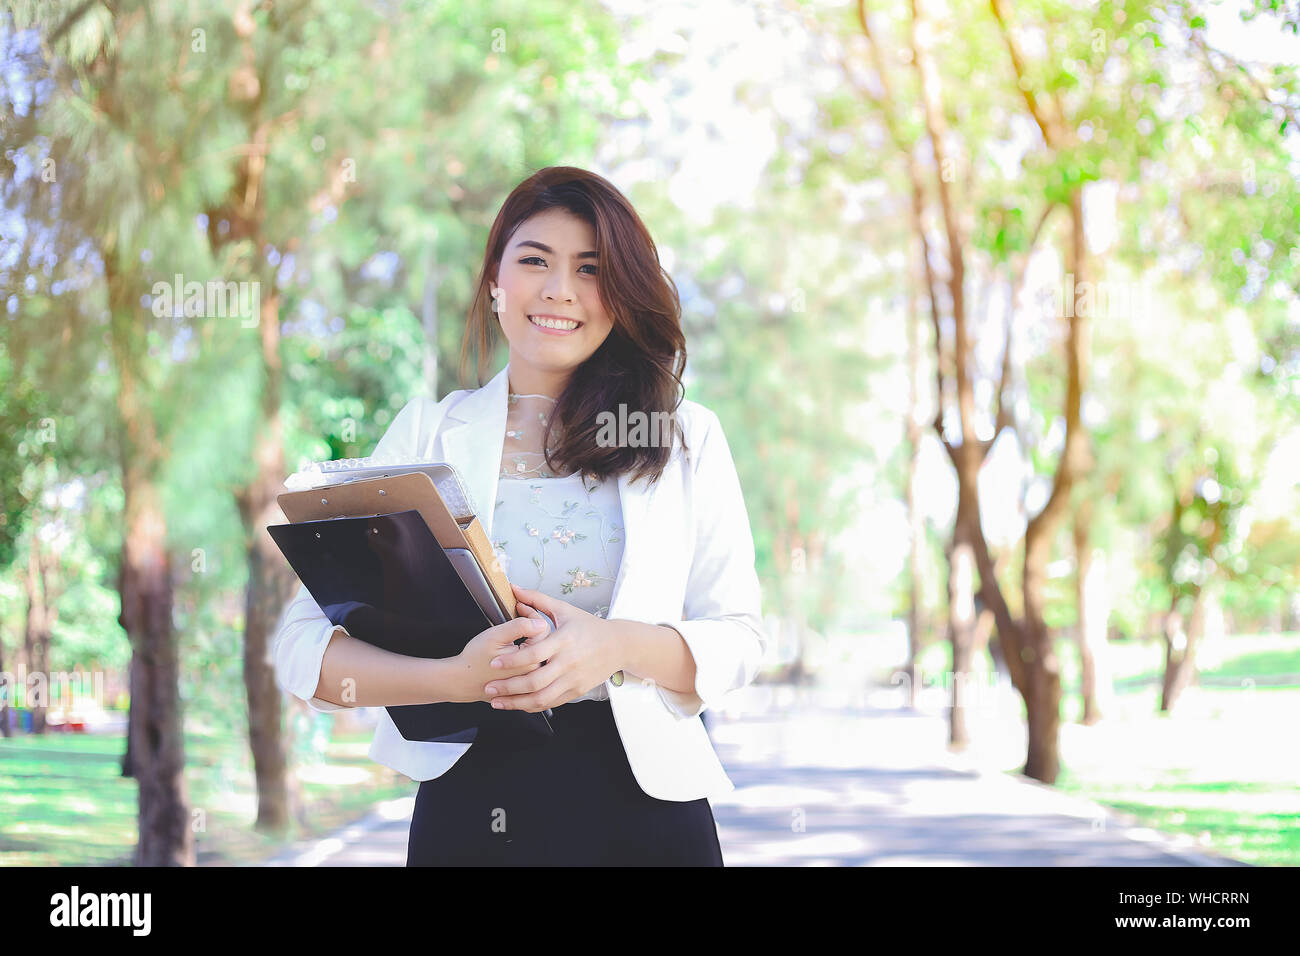 Portrait Of Smiling Young Woman Standing On Road Amidst Trees Stock Photo